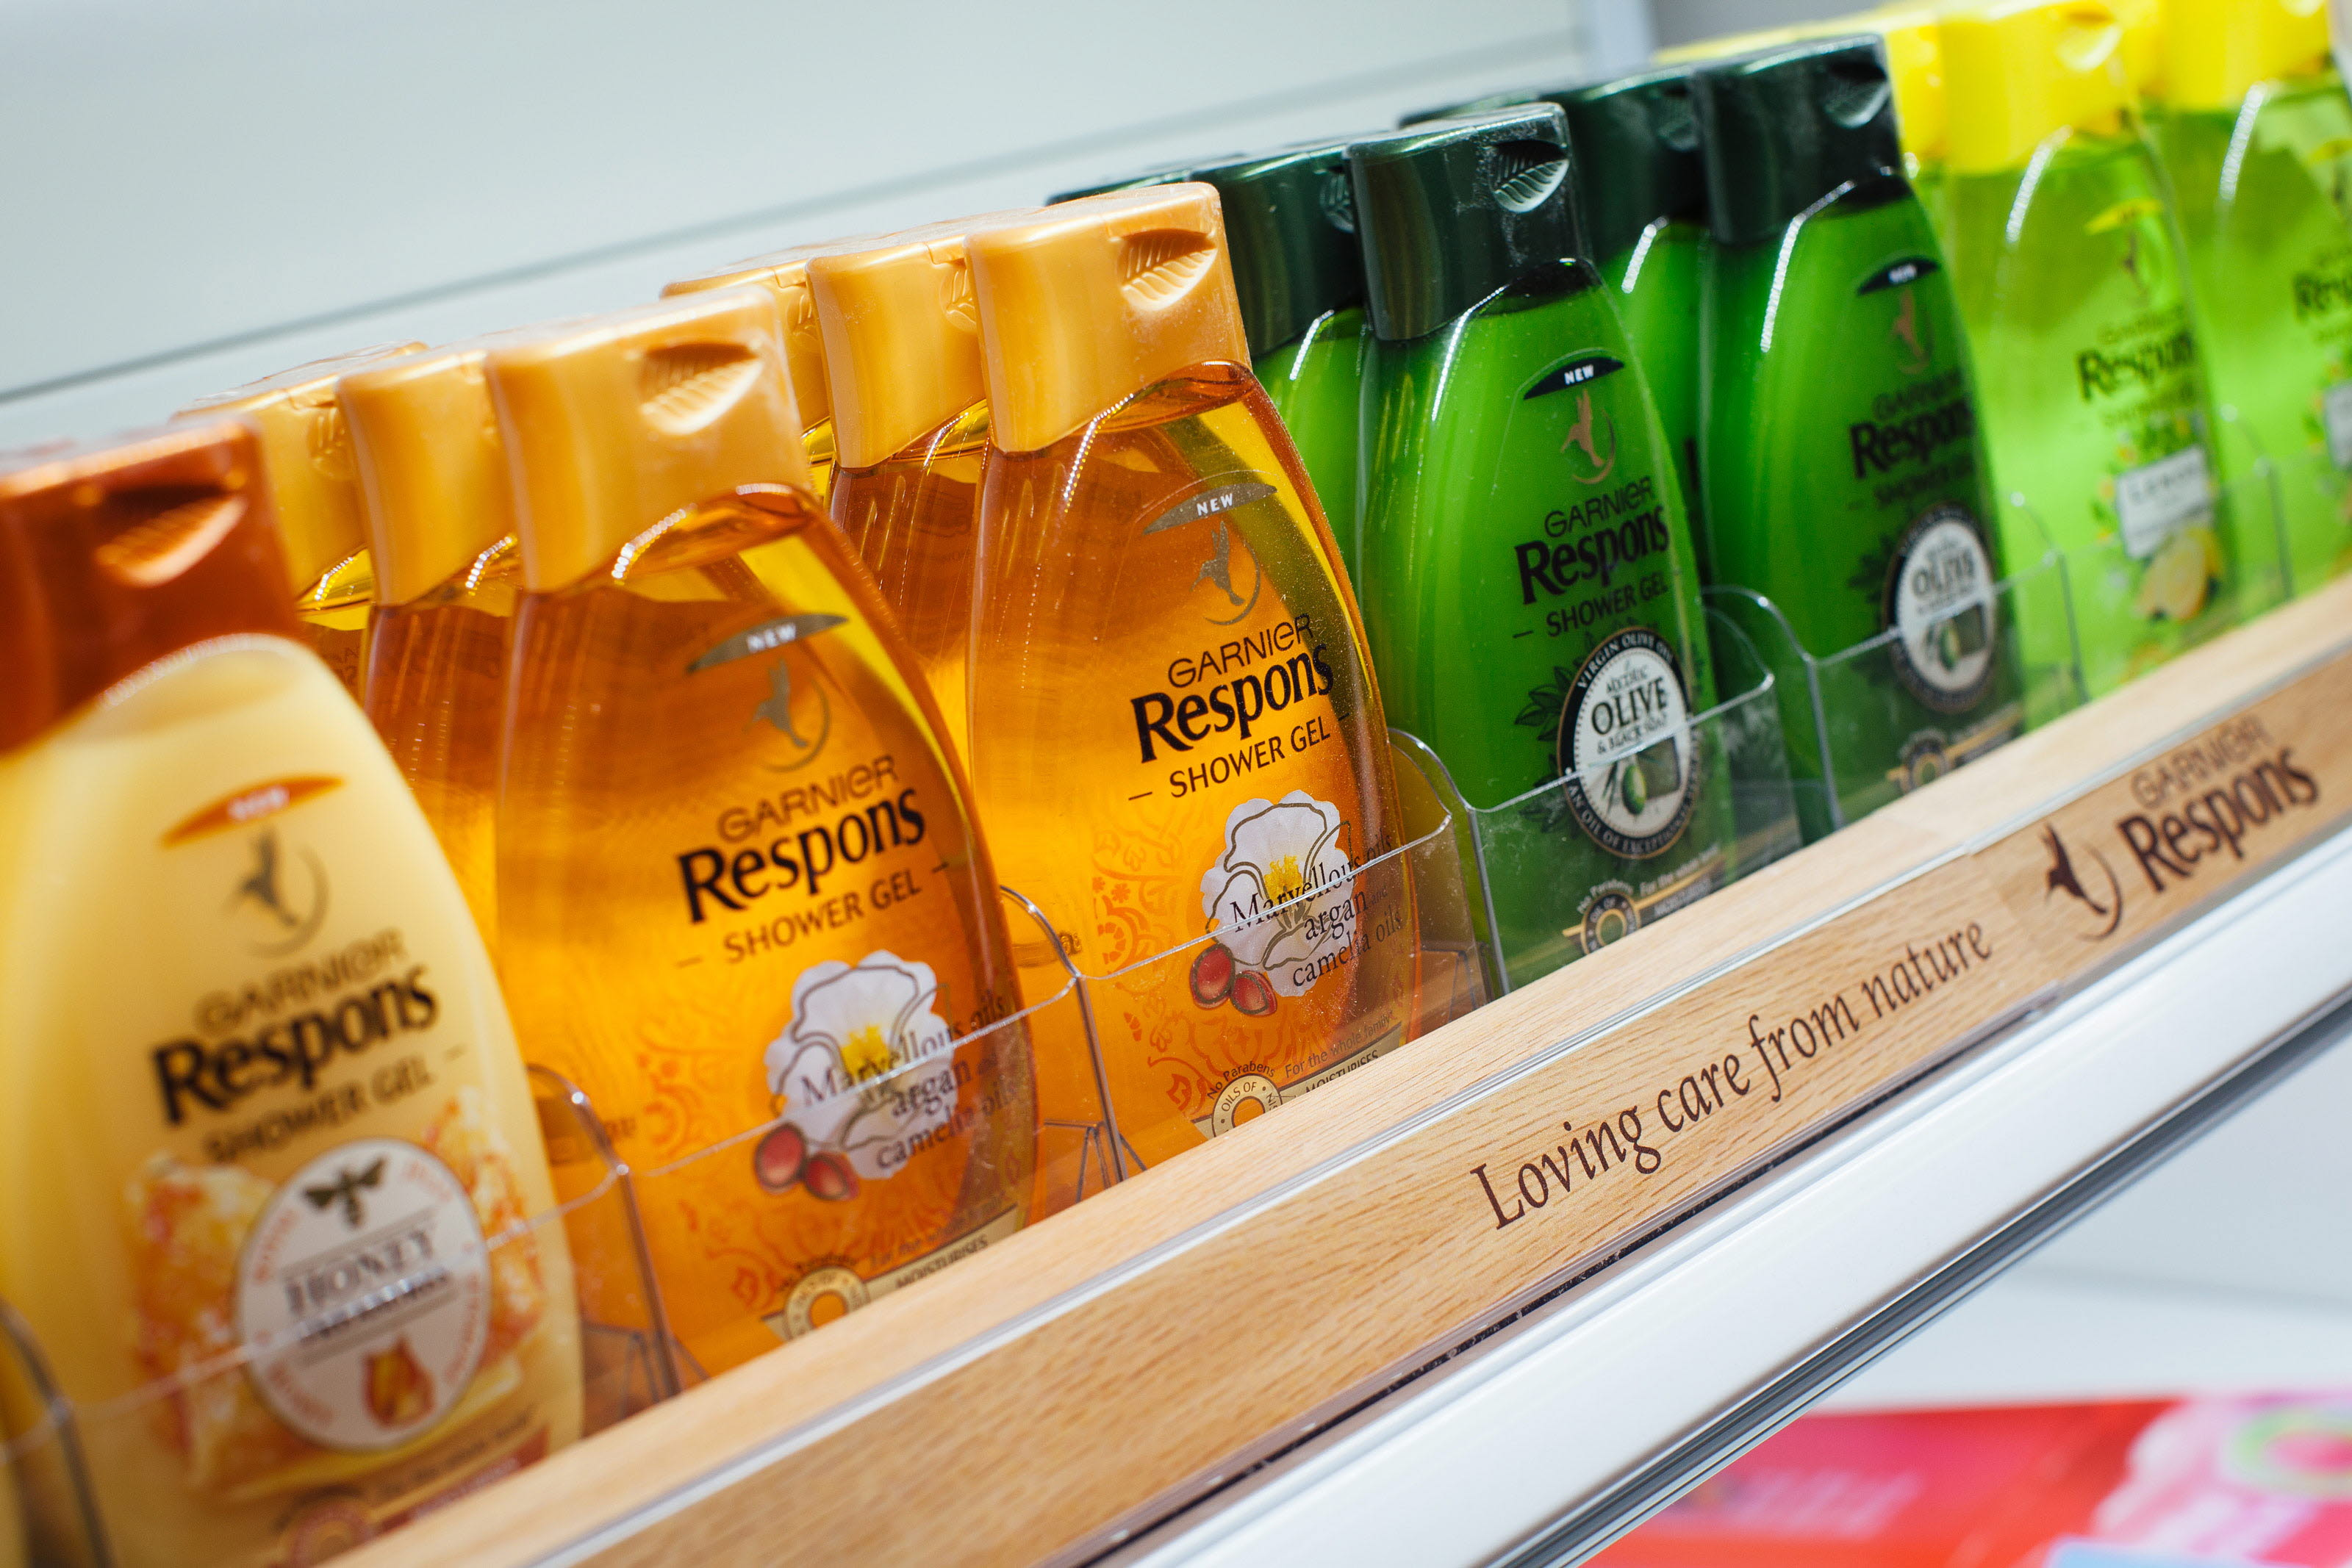 Garnier_Respons_Shelf-Trays_39272_0604.jpg